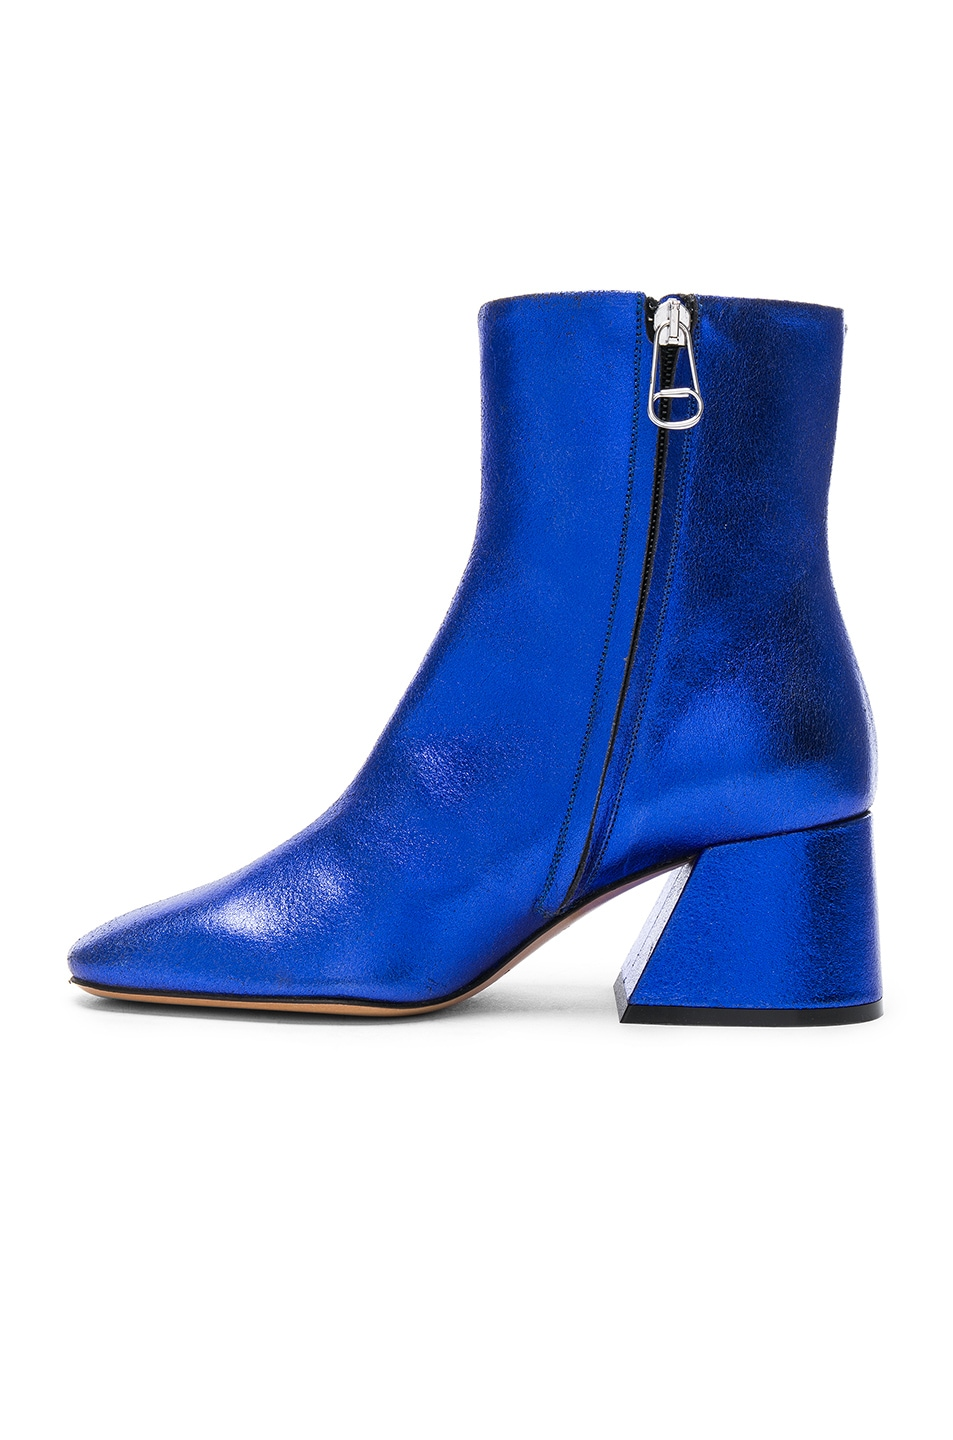 Image 5 of Maison Margiela Laminated Leather Chunky Heel Boots in Cobalt